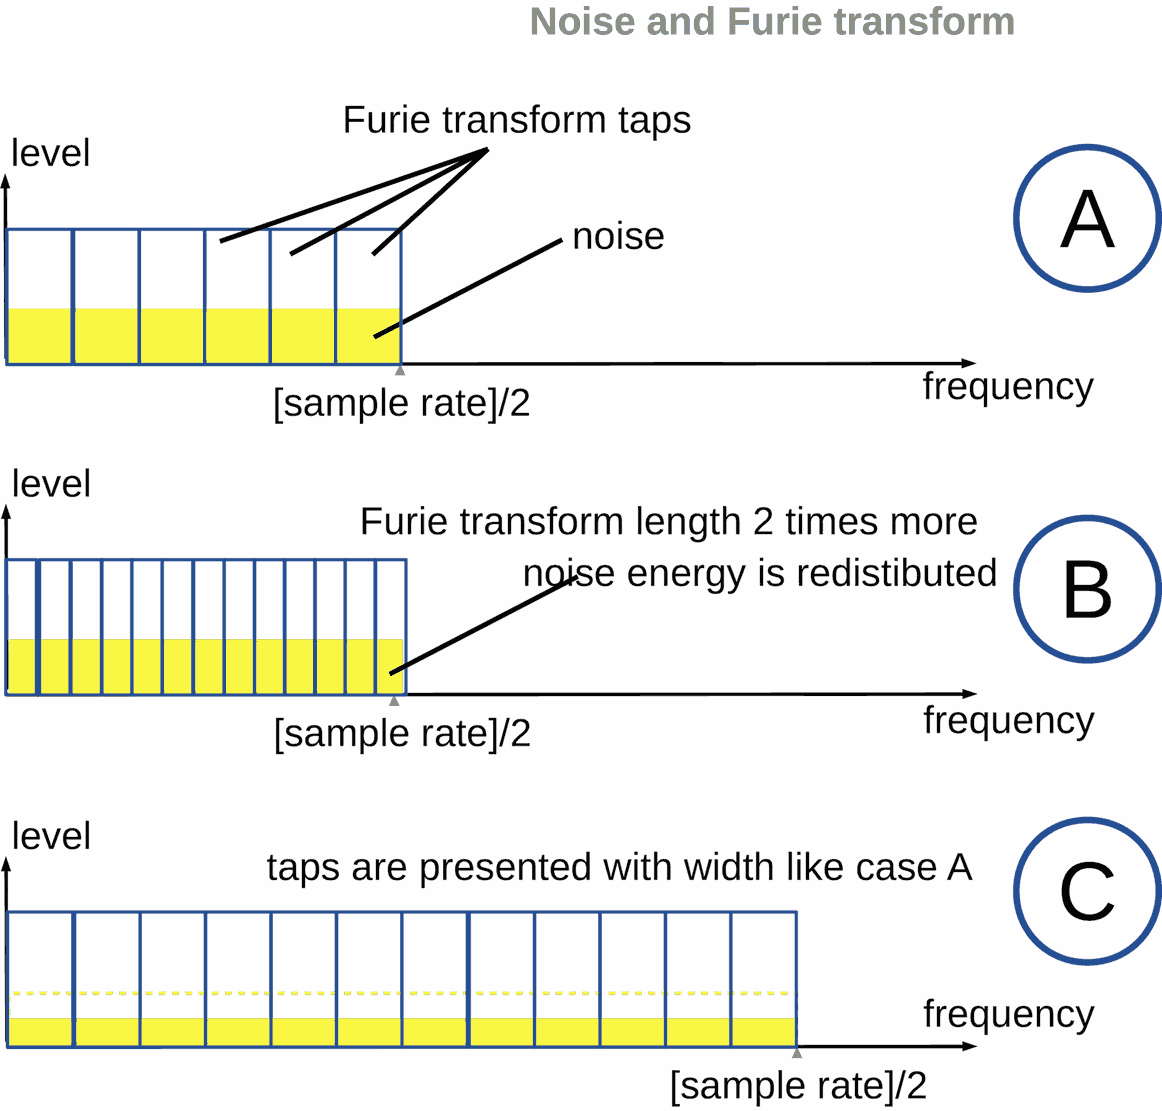 Noise level and Fourier transform taps dependency